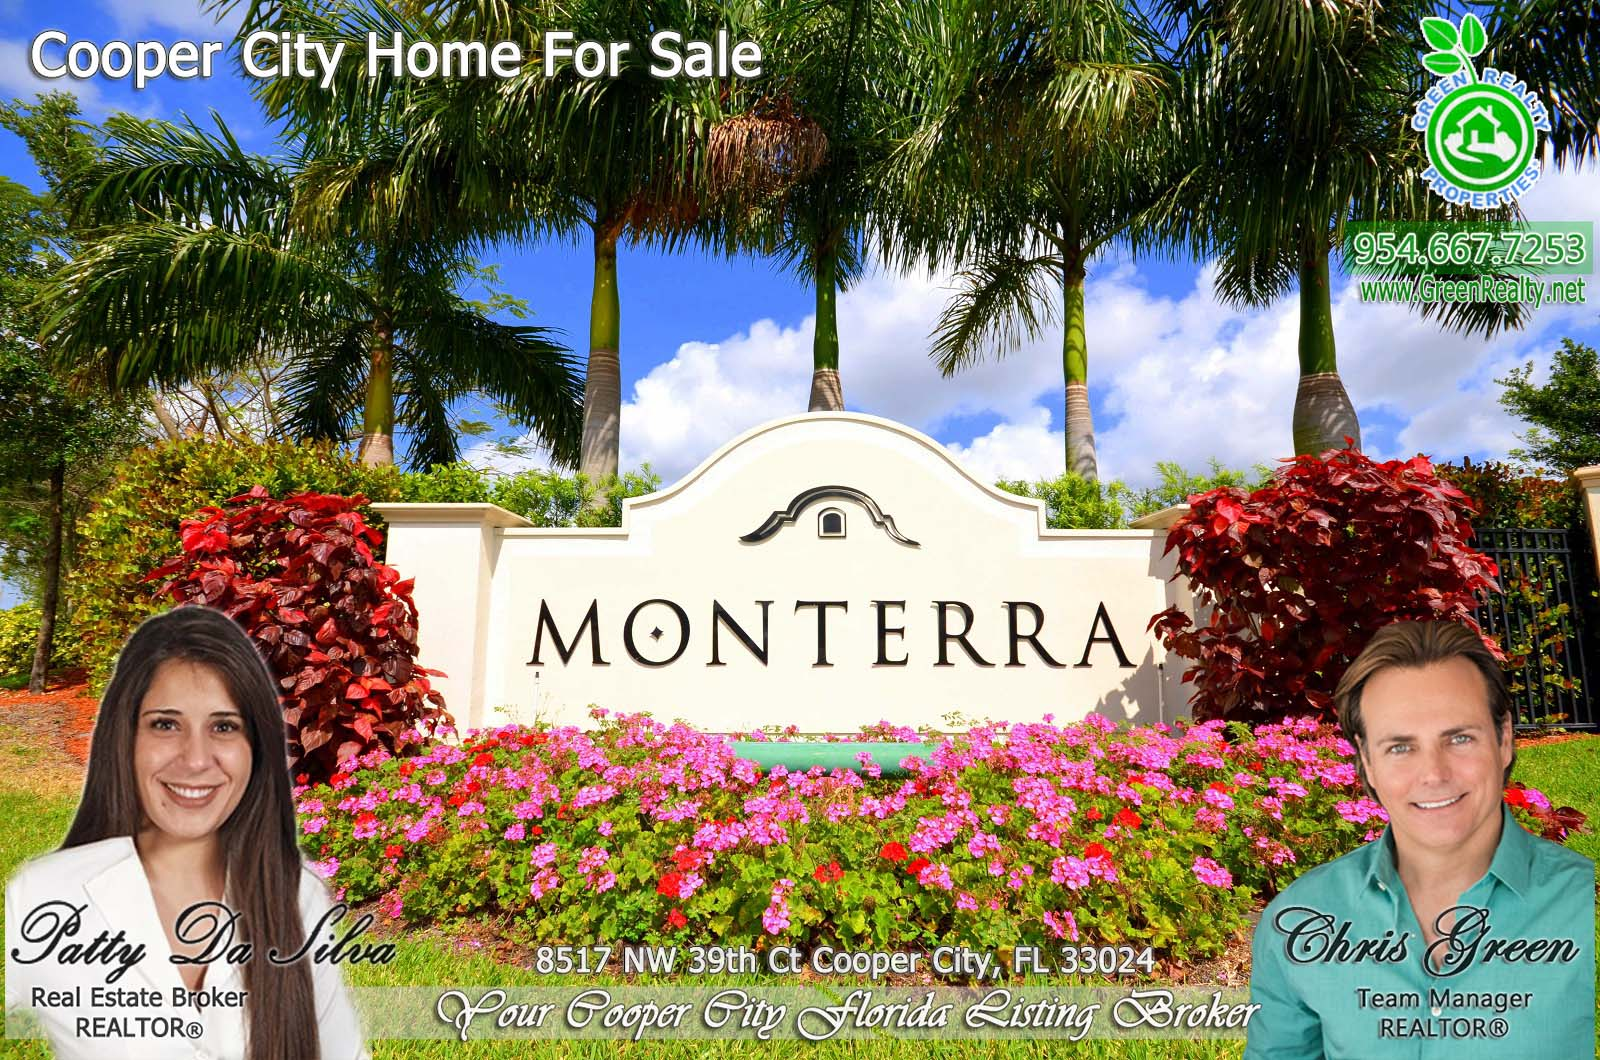 58 Monterra Real Estate Experts (4)